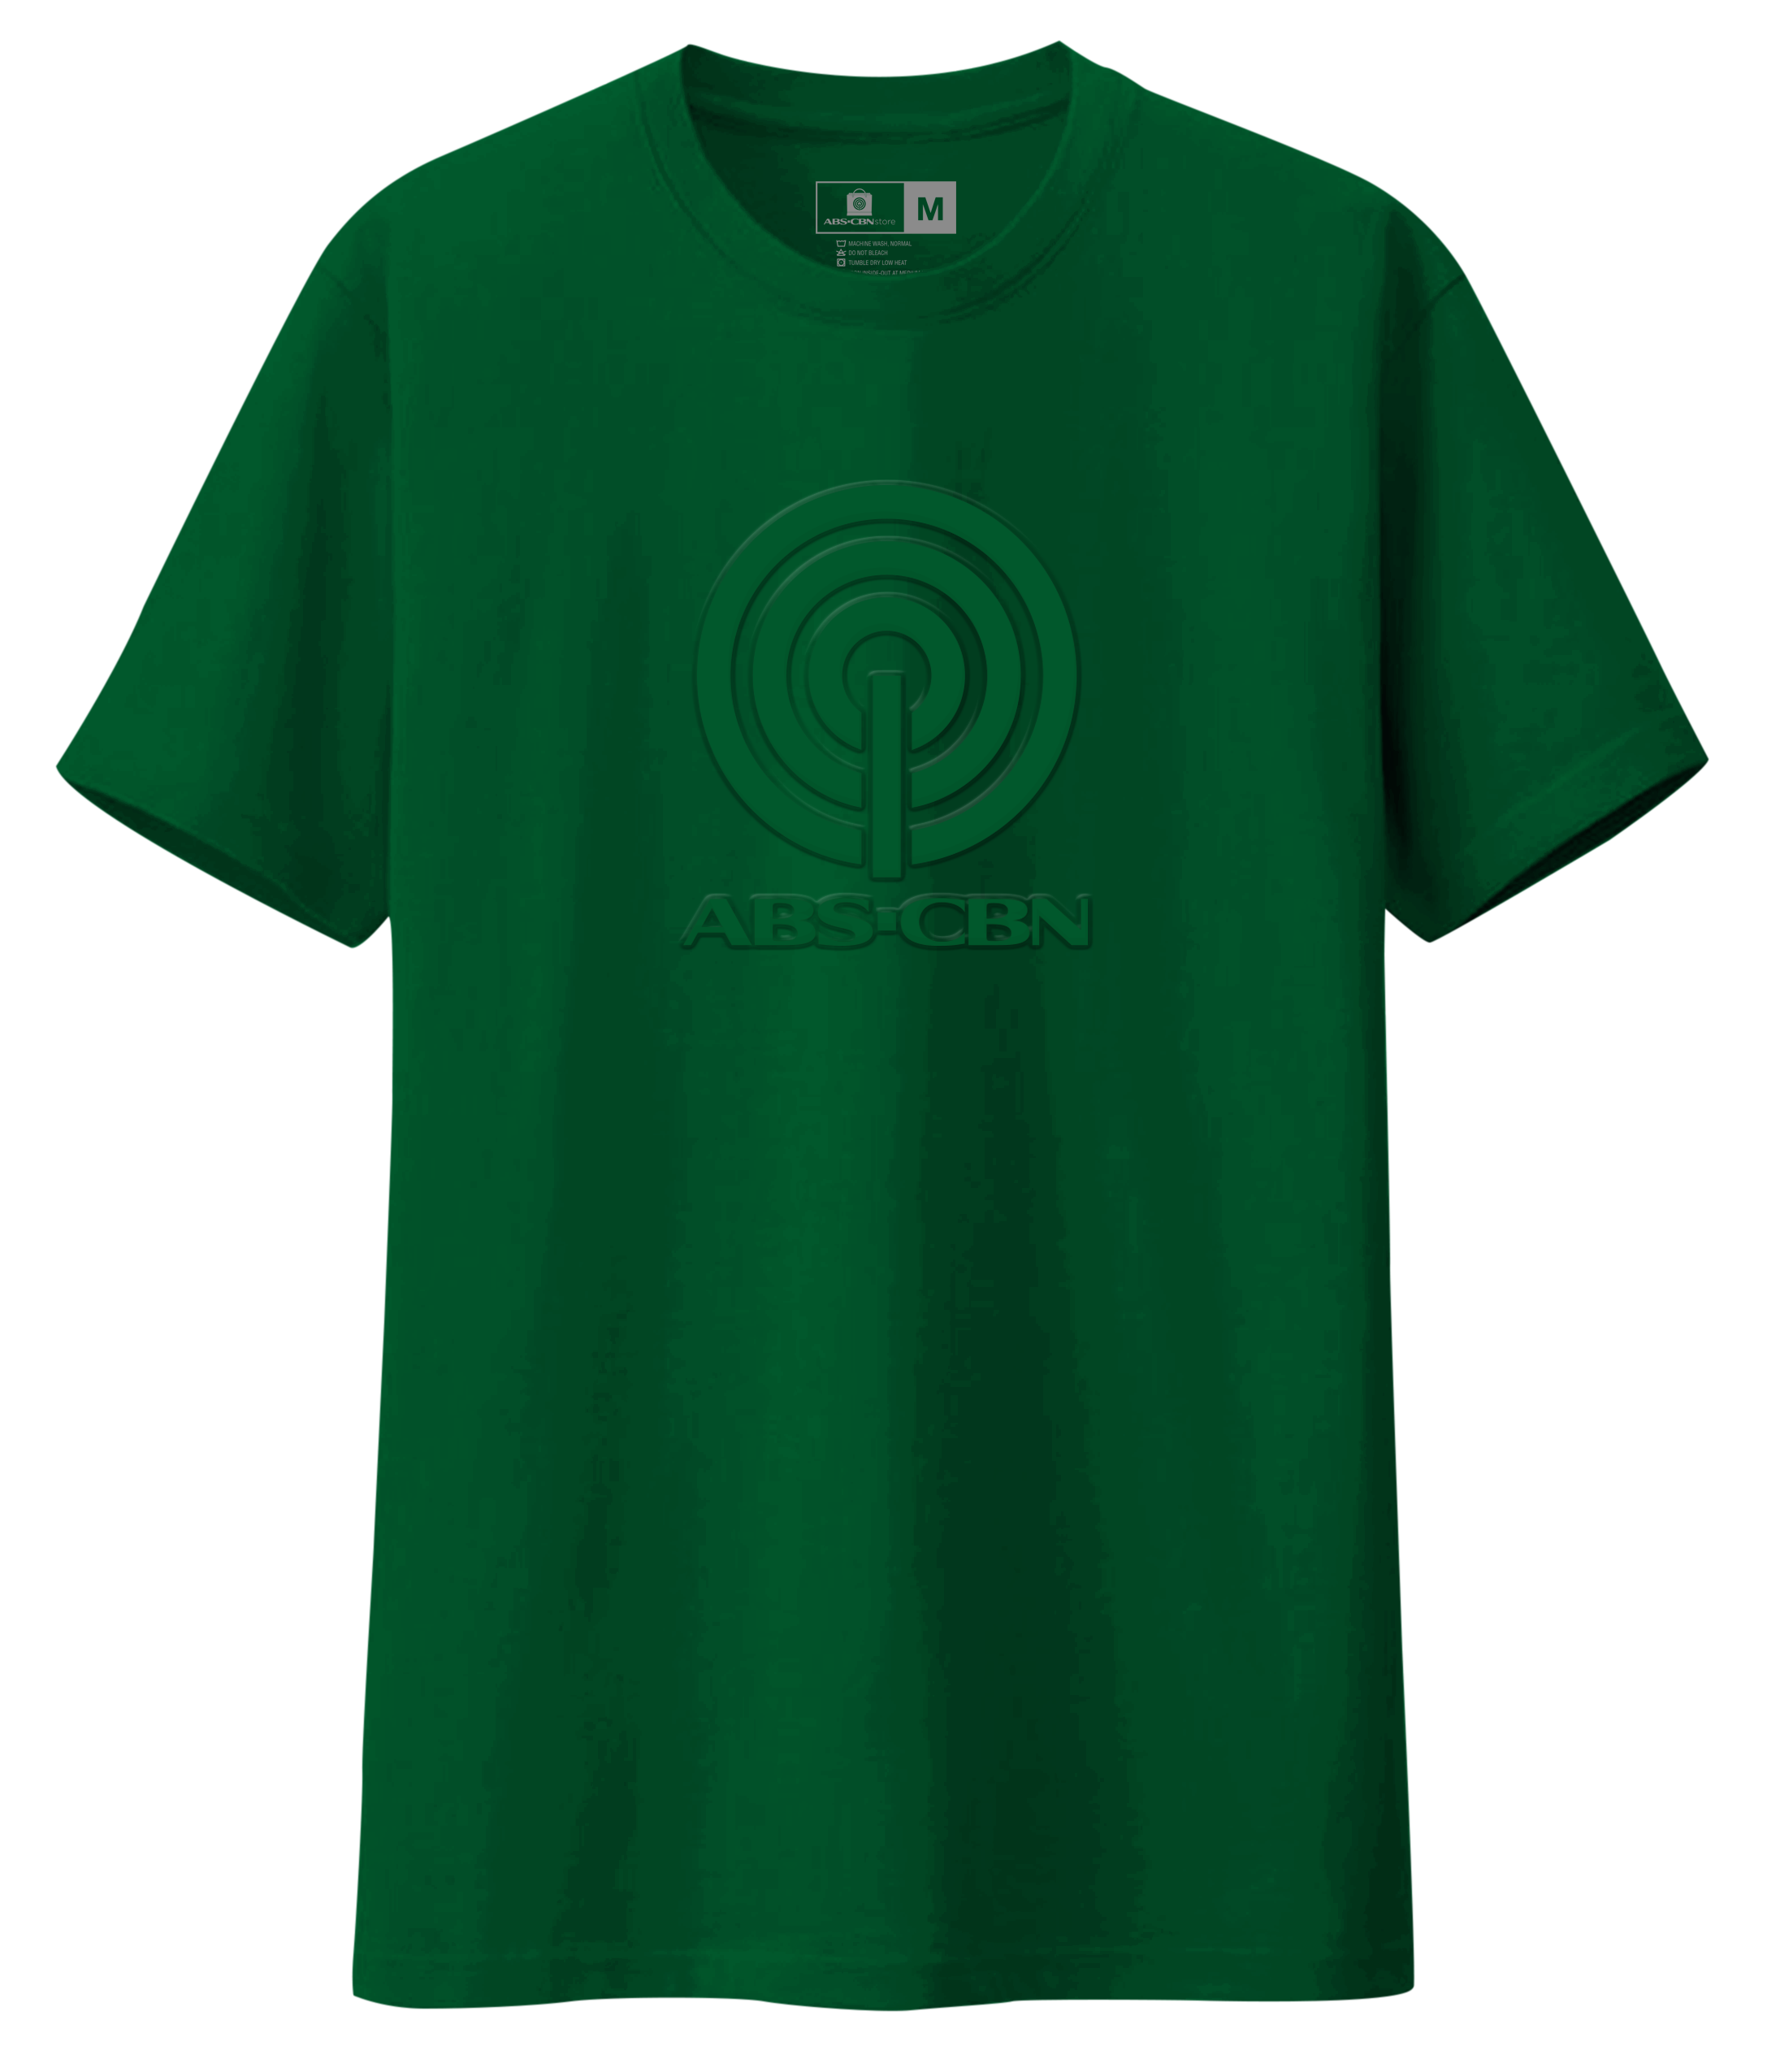 ABS-CBN Shirt Fern Green